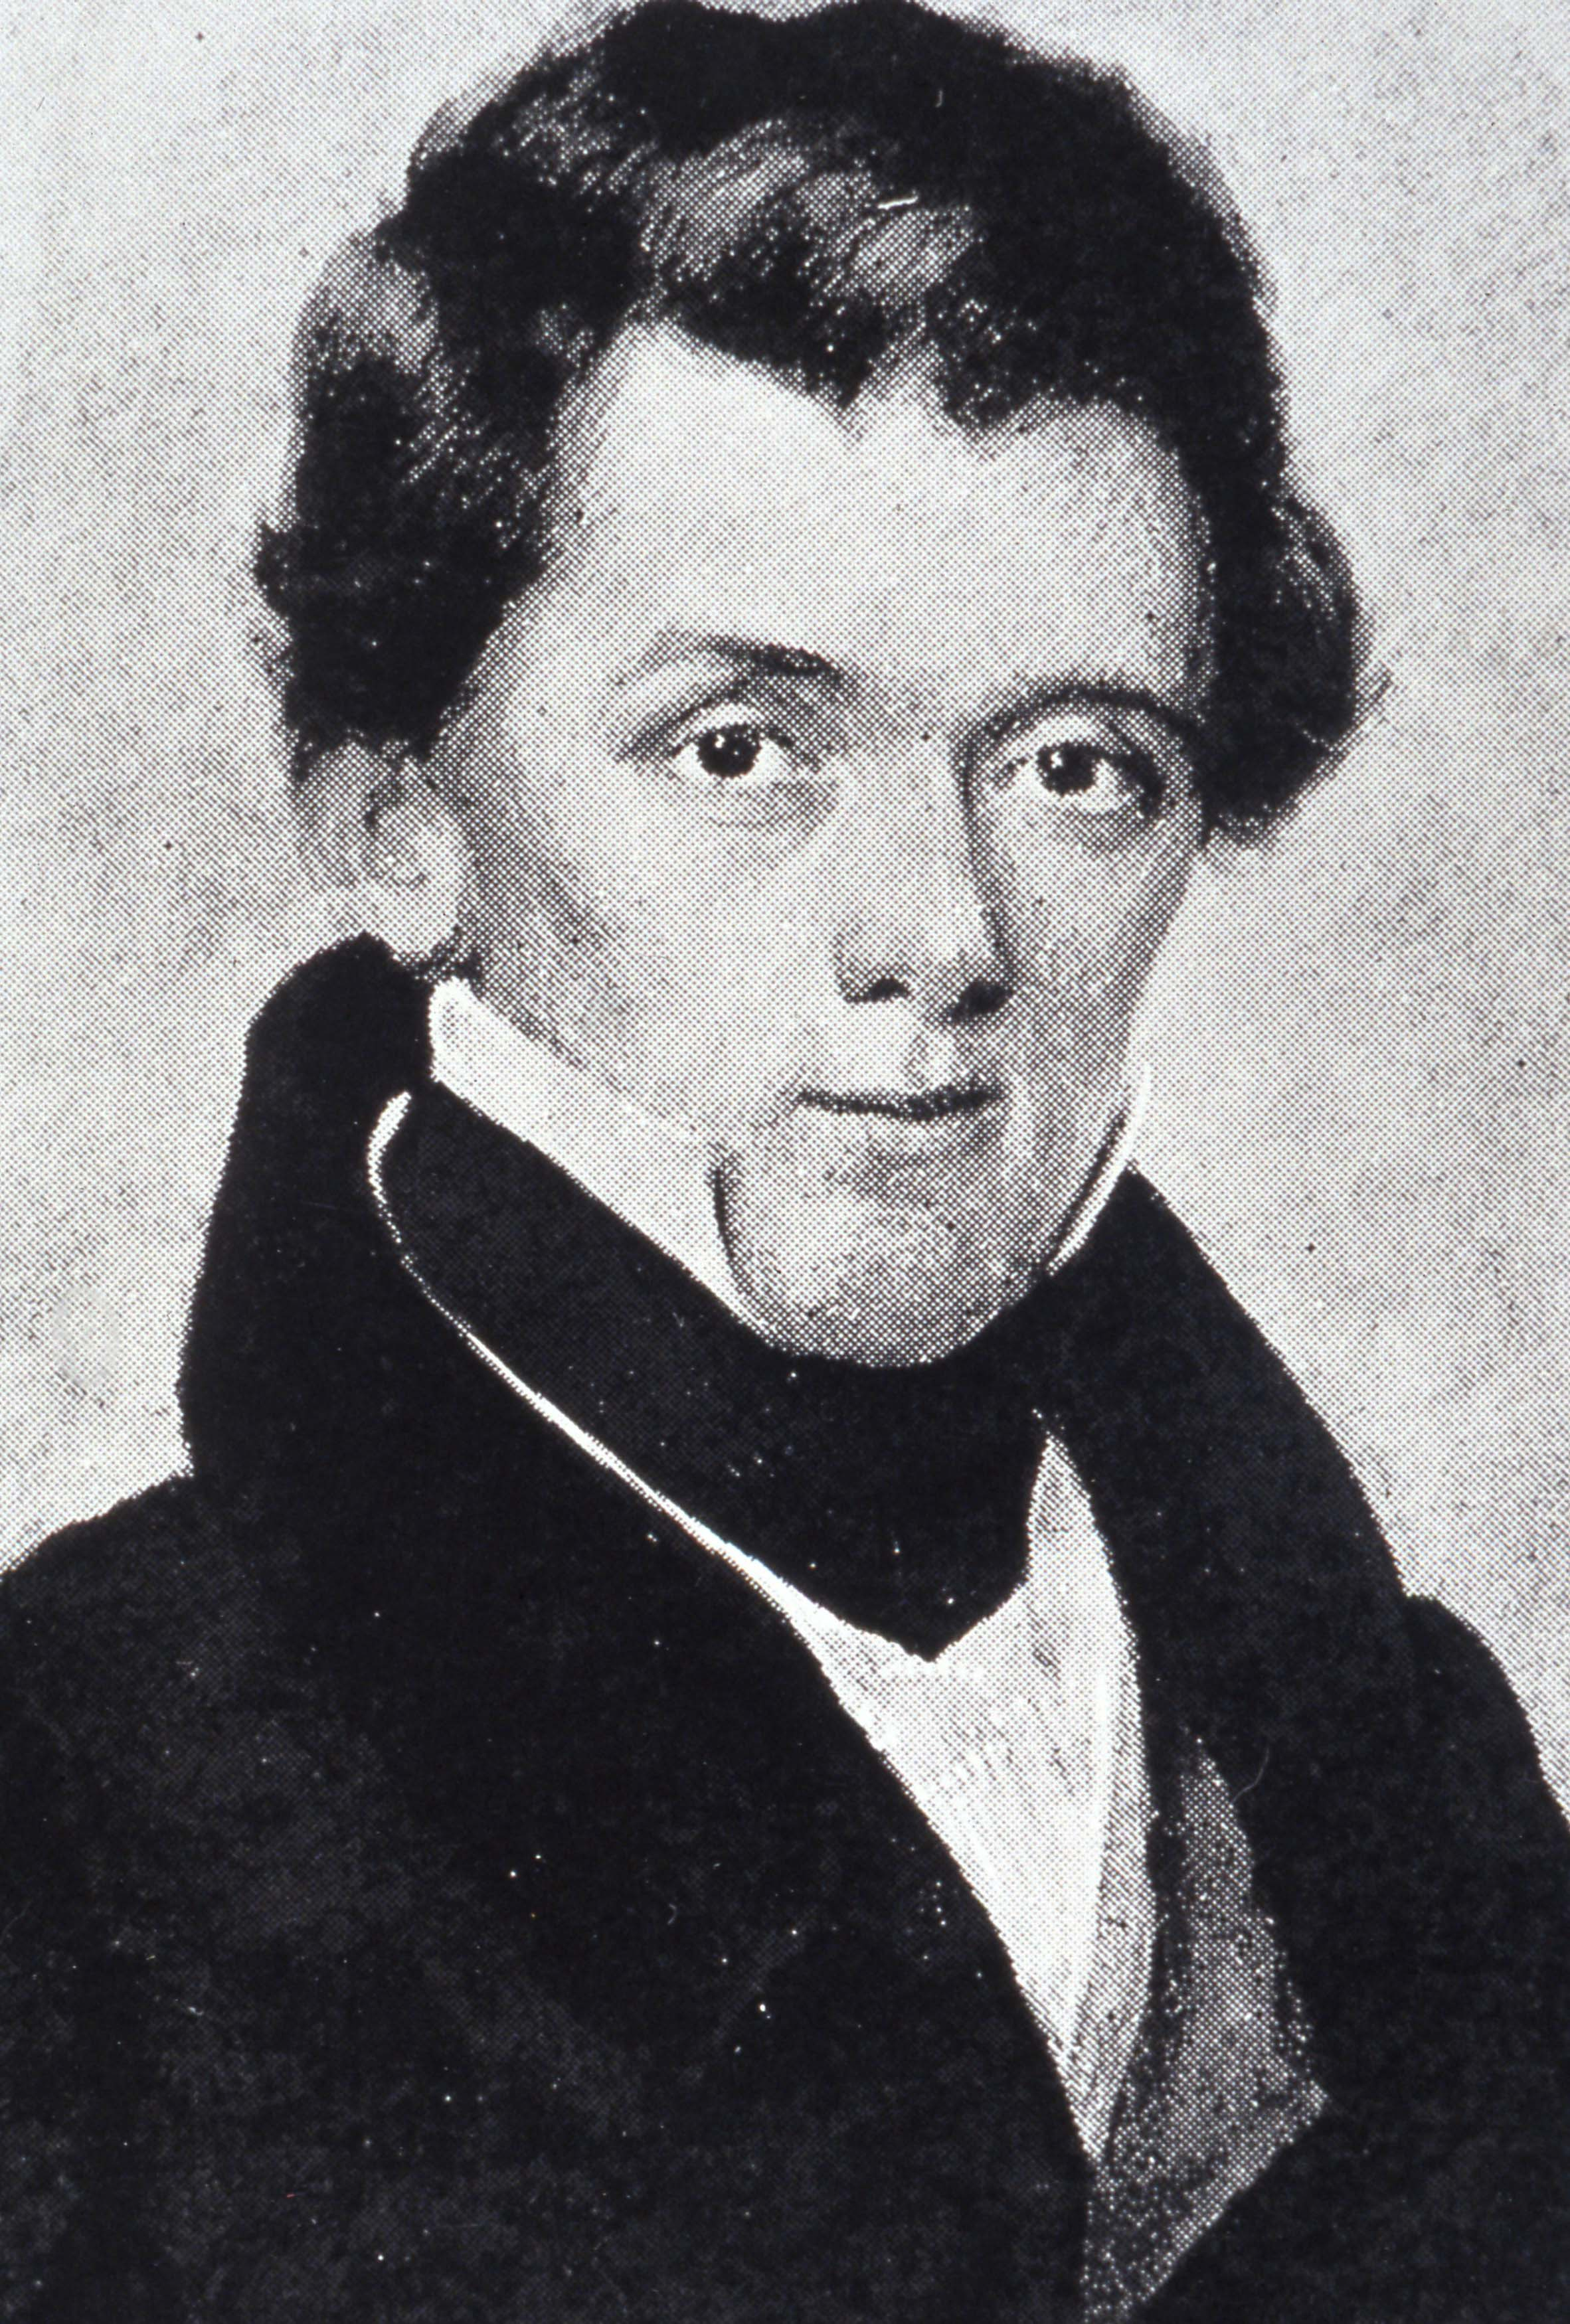 This image is a portrait of naturalist Edwin James. He has dark longer hair which appears to be pulled to the back of his head, and he wears a jacket with the collar up, and underneath is a high-collared white dress shirt.